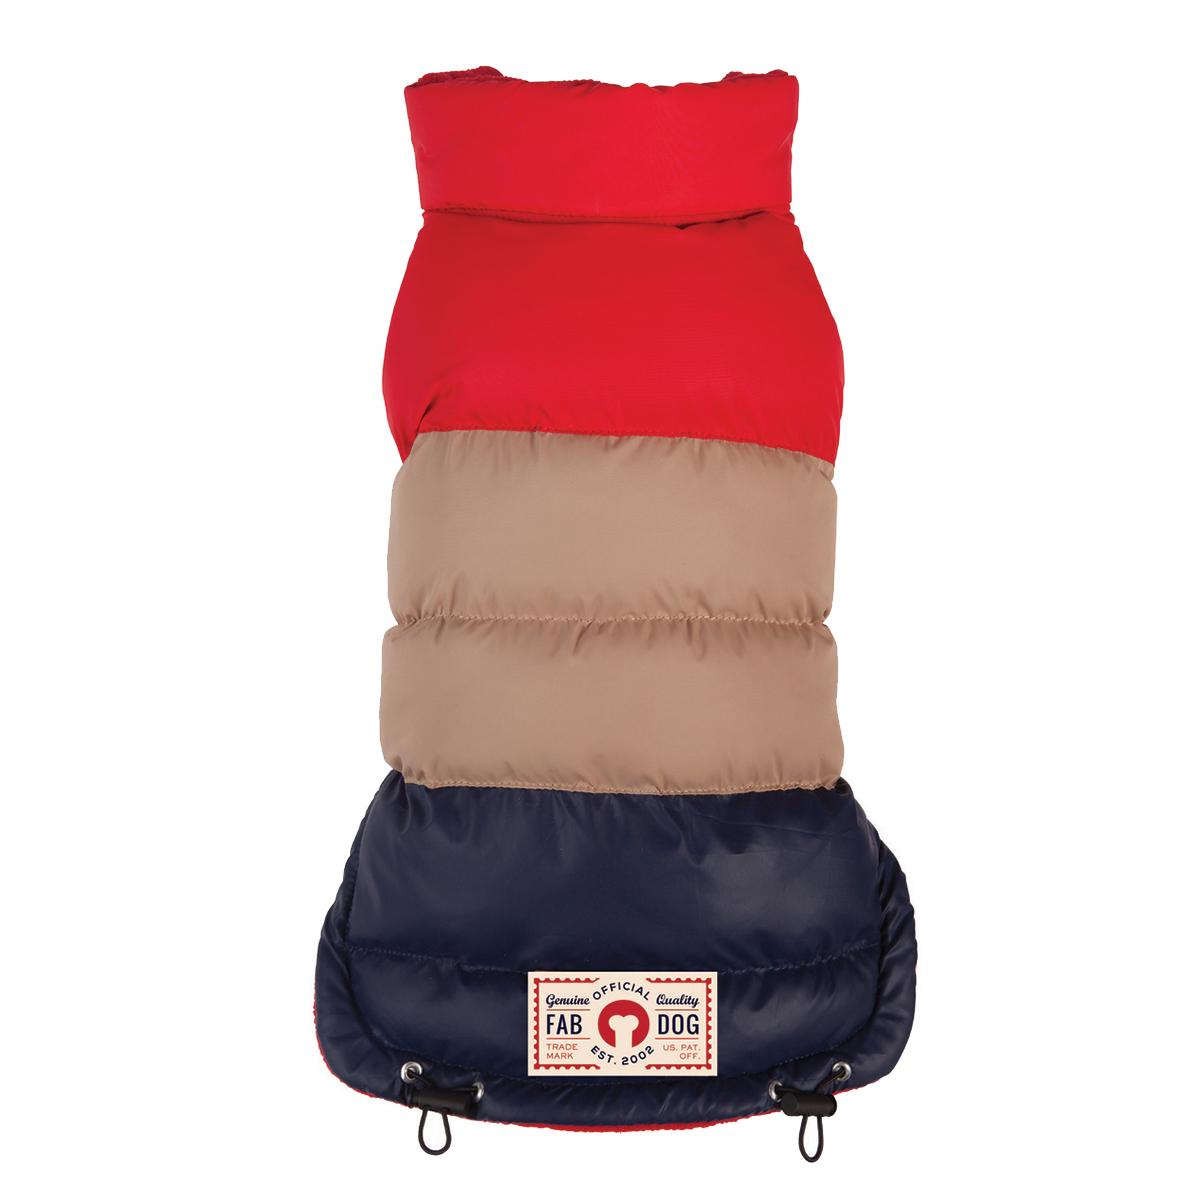 Colorblock Puffer Dog Coat by fabdog® - Red, Tan and Navy